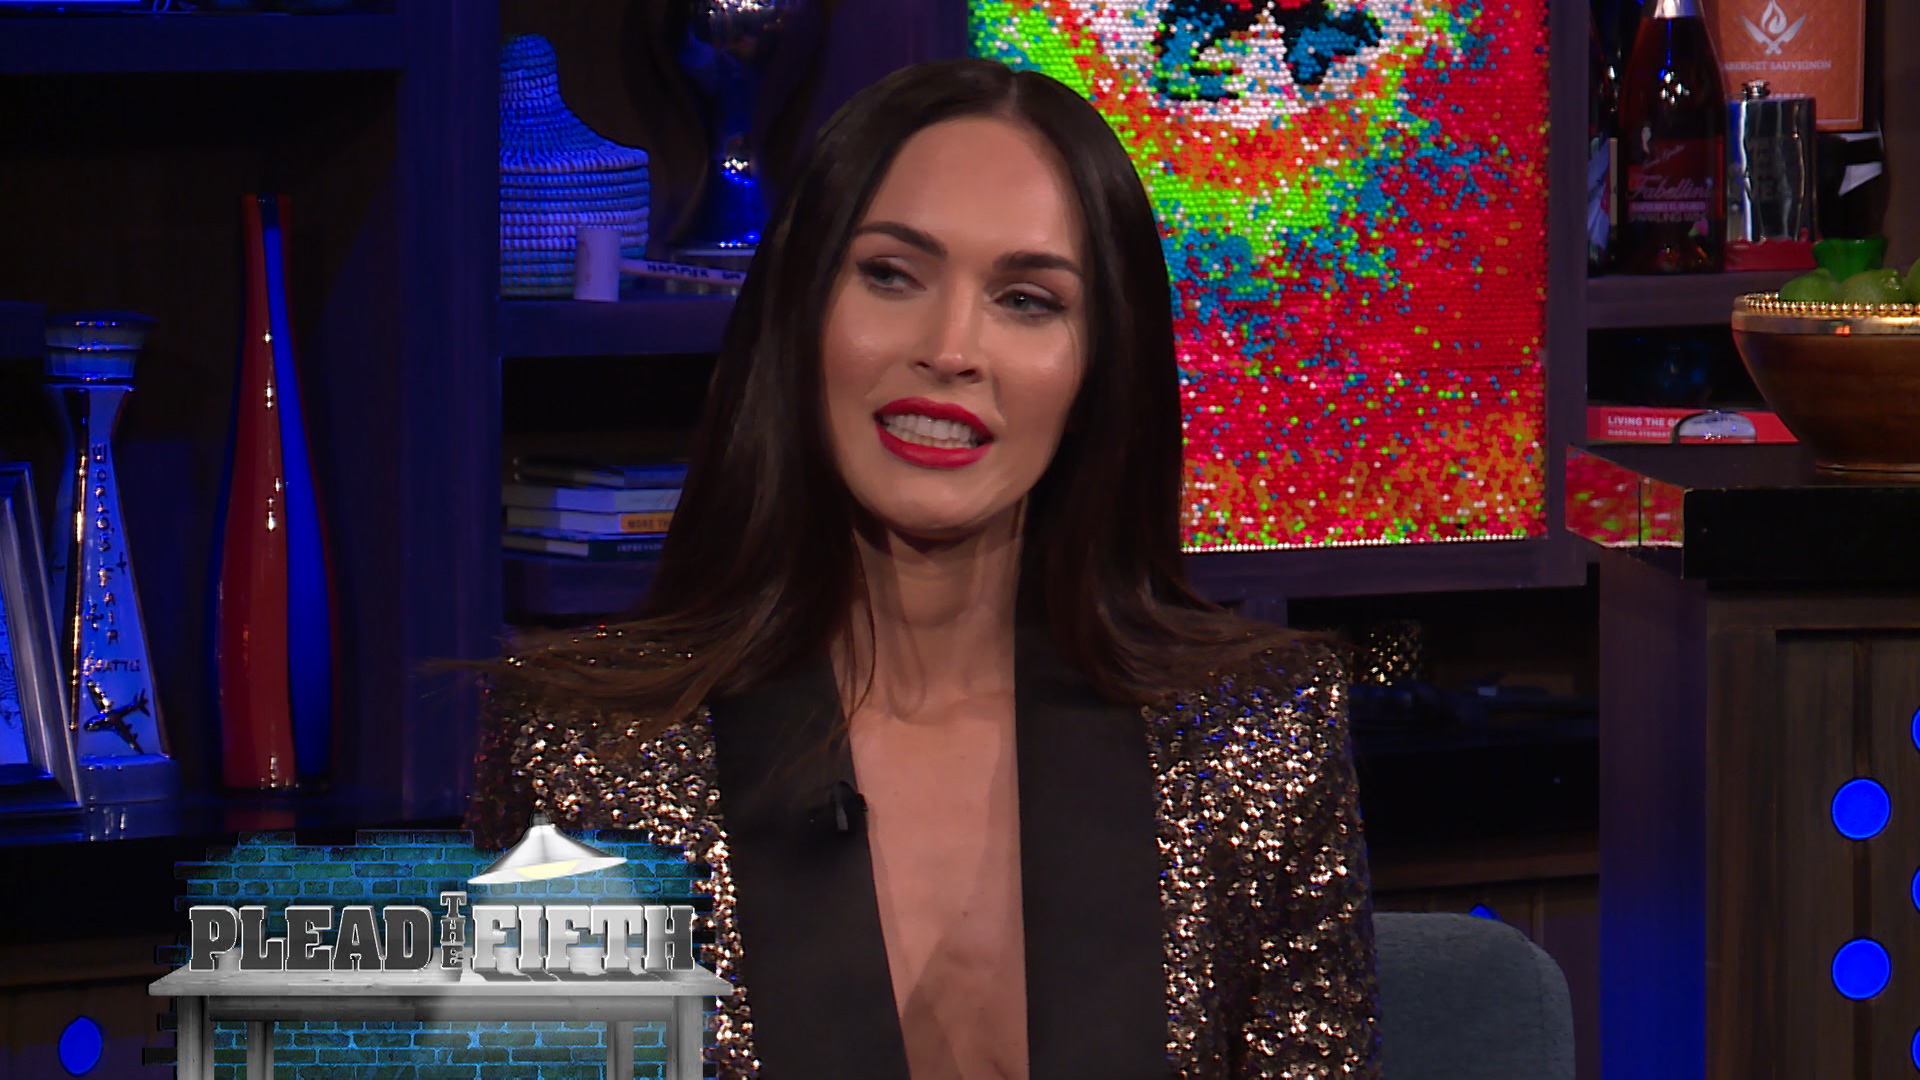 Megan Fox Plays Plead the Fifth!